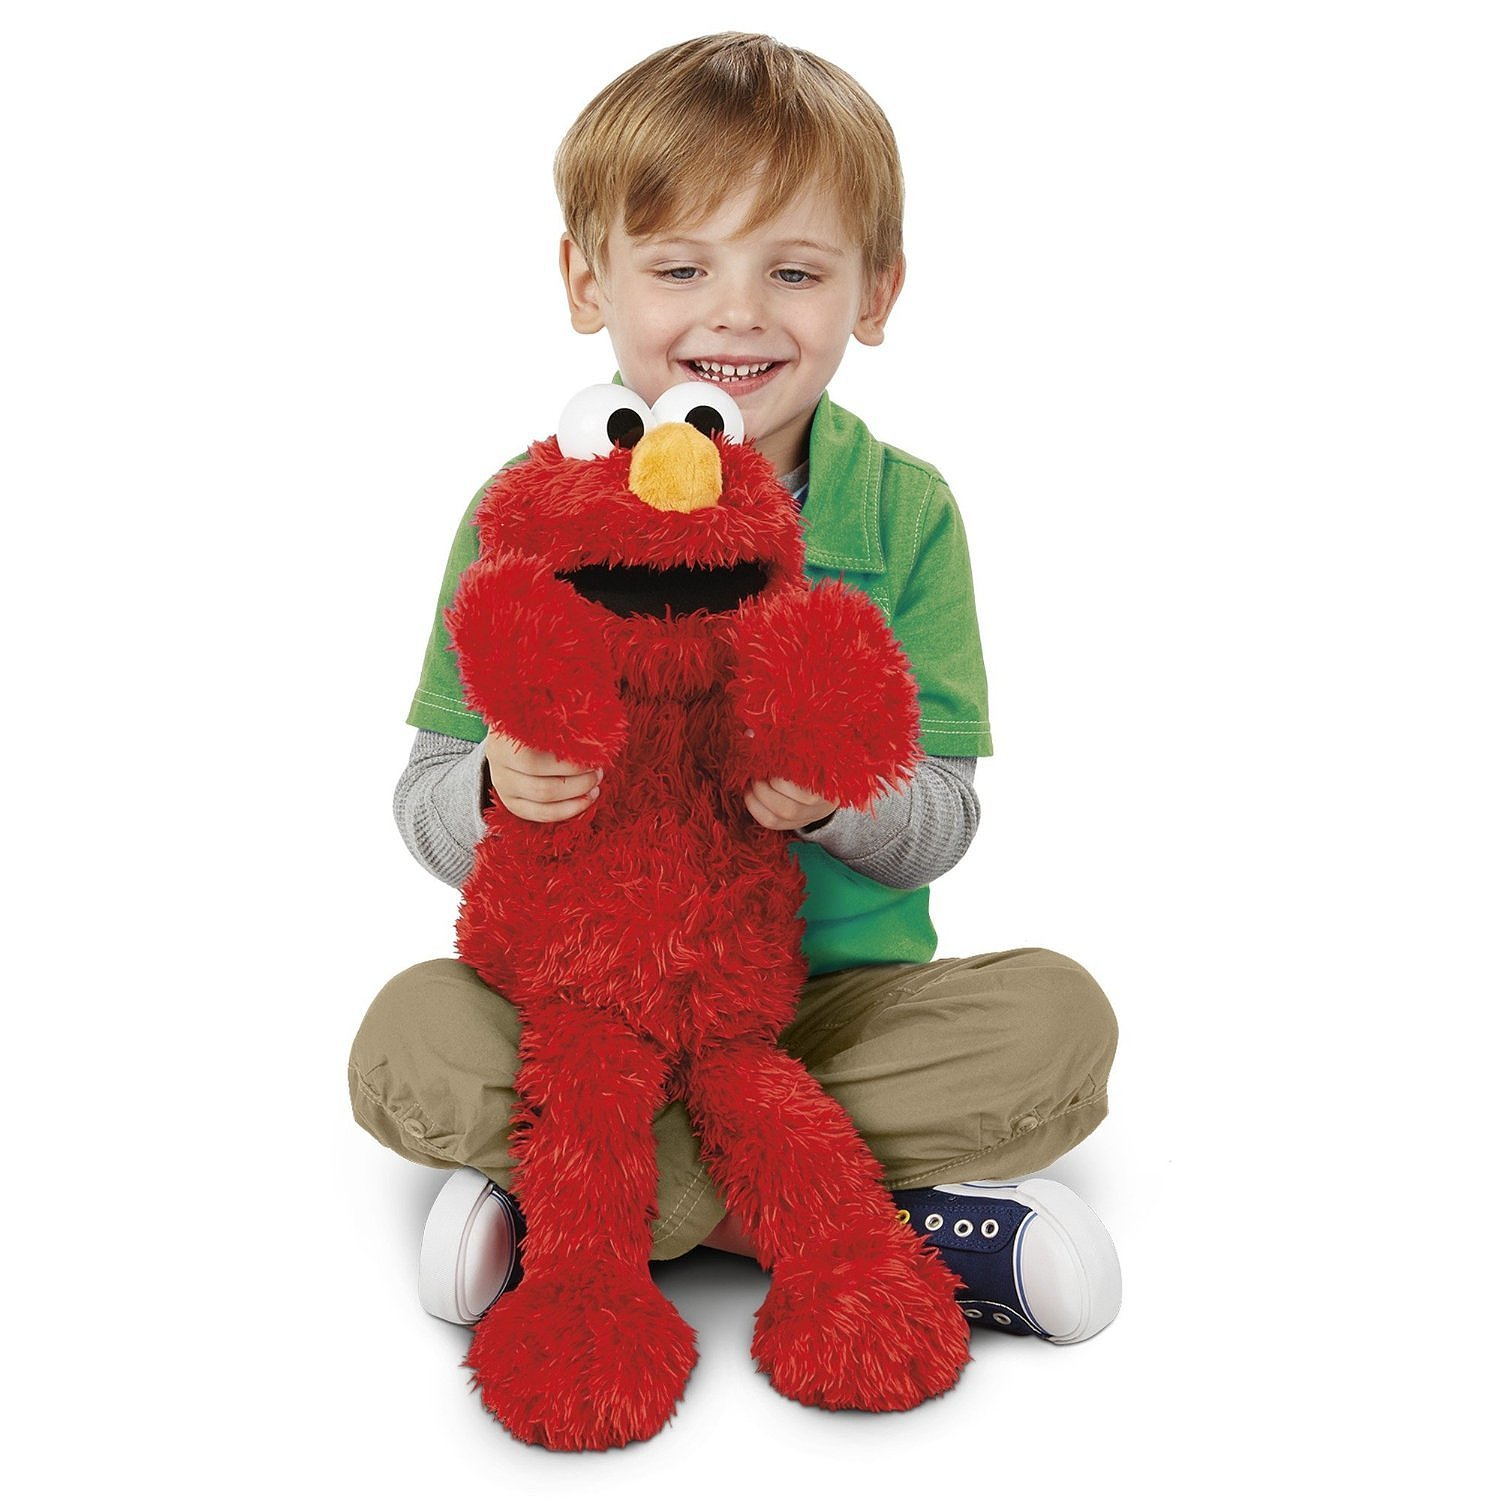 Toys For 21 Year Olds : Sesame street play all day elmo great gift ideas for